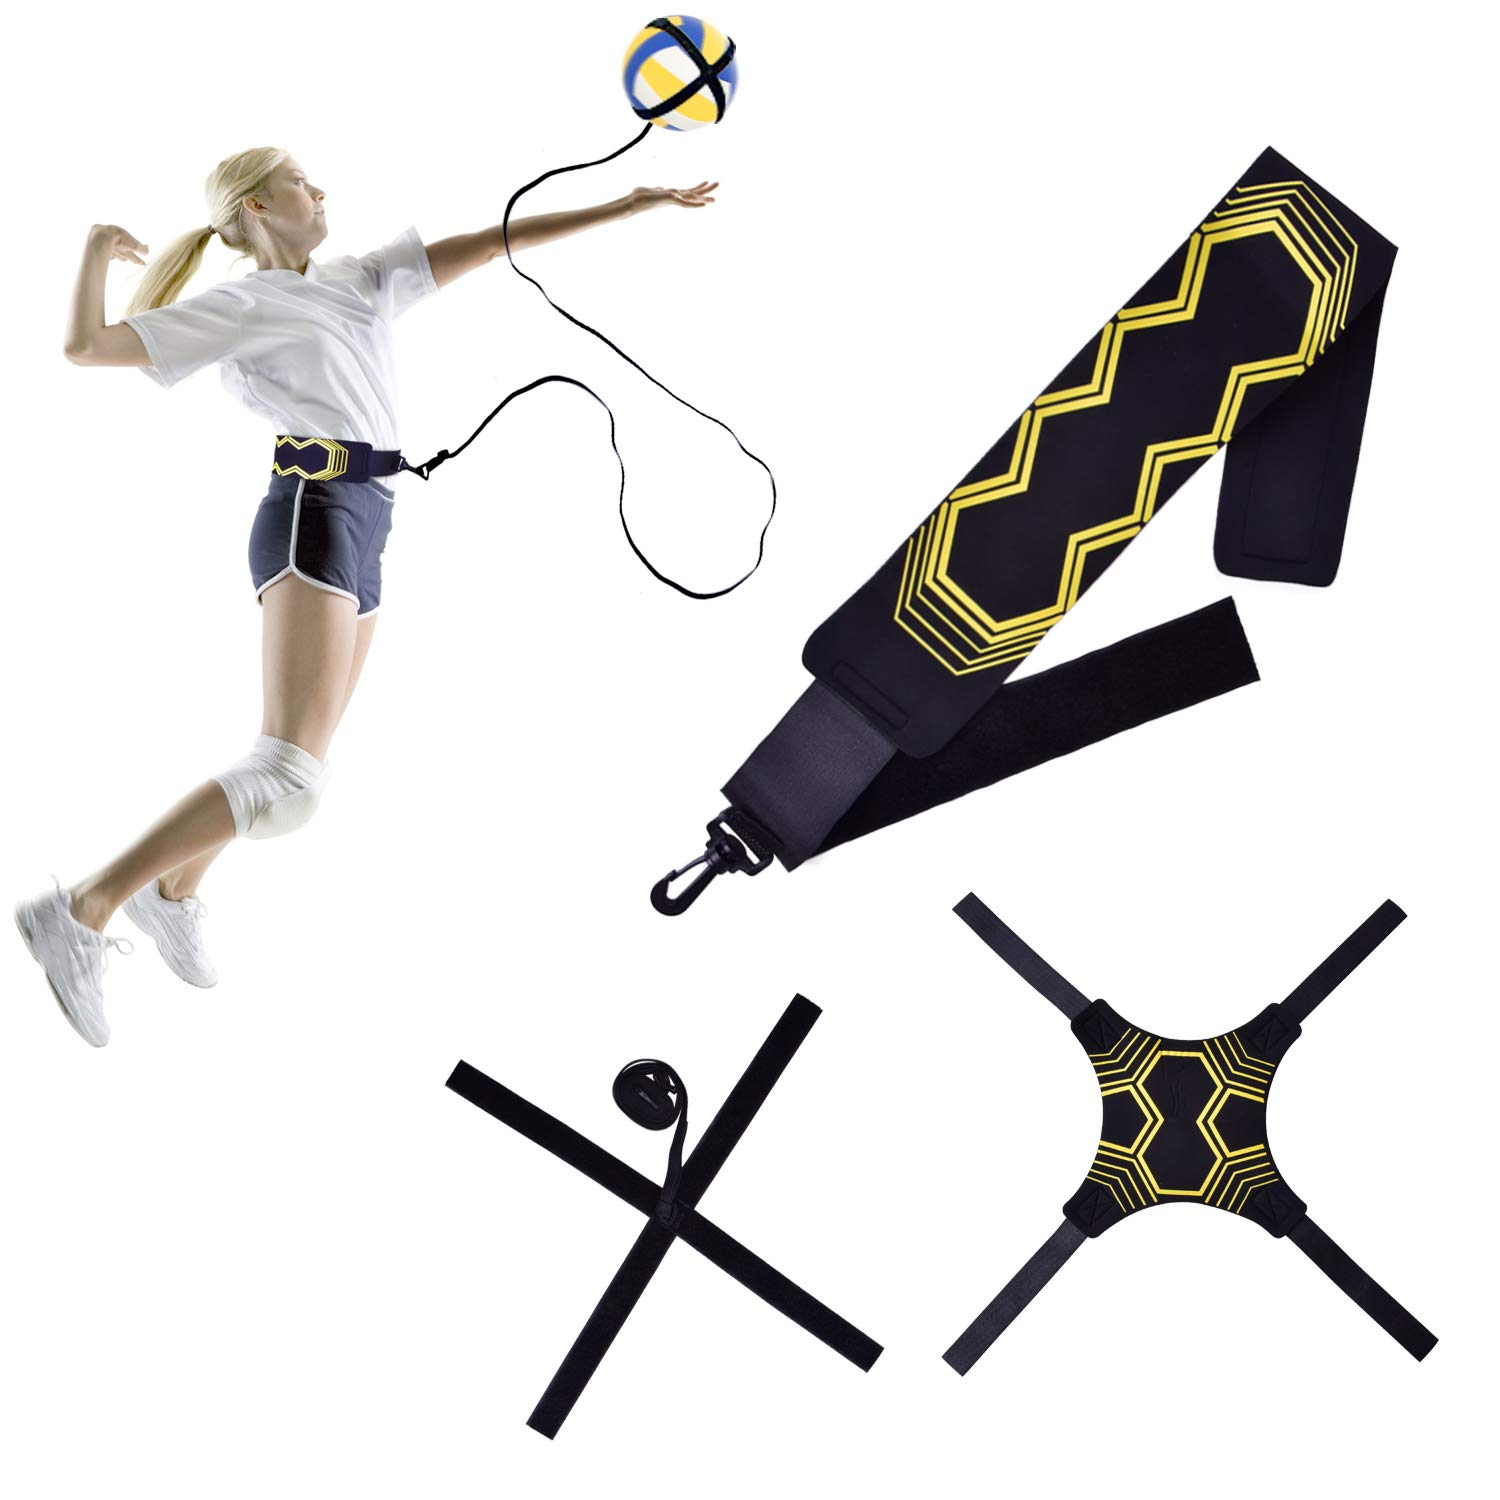 U-picks Volleyball Training Aids,Spiker Tether Equipment for New Beginner and Experts